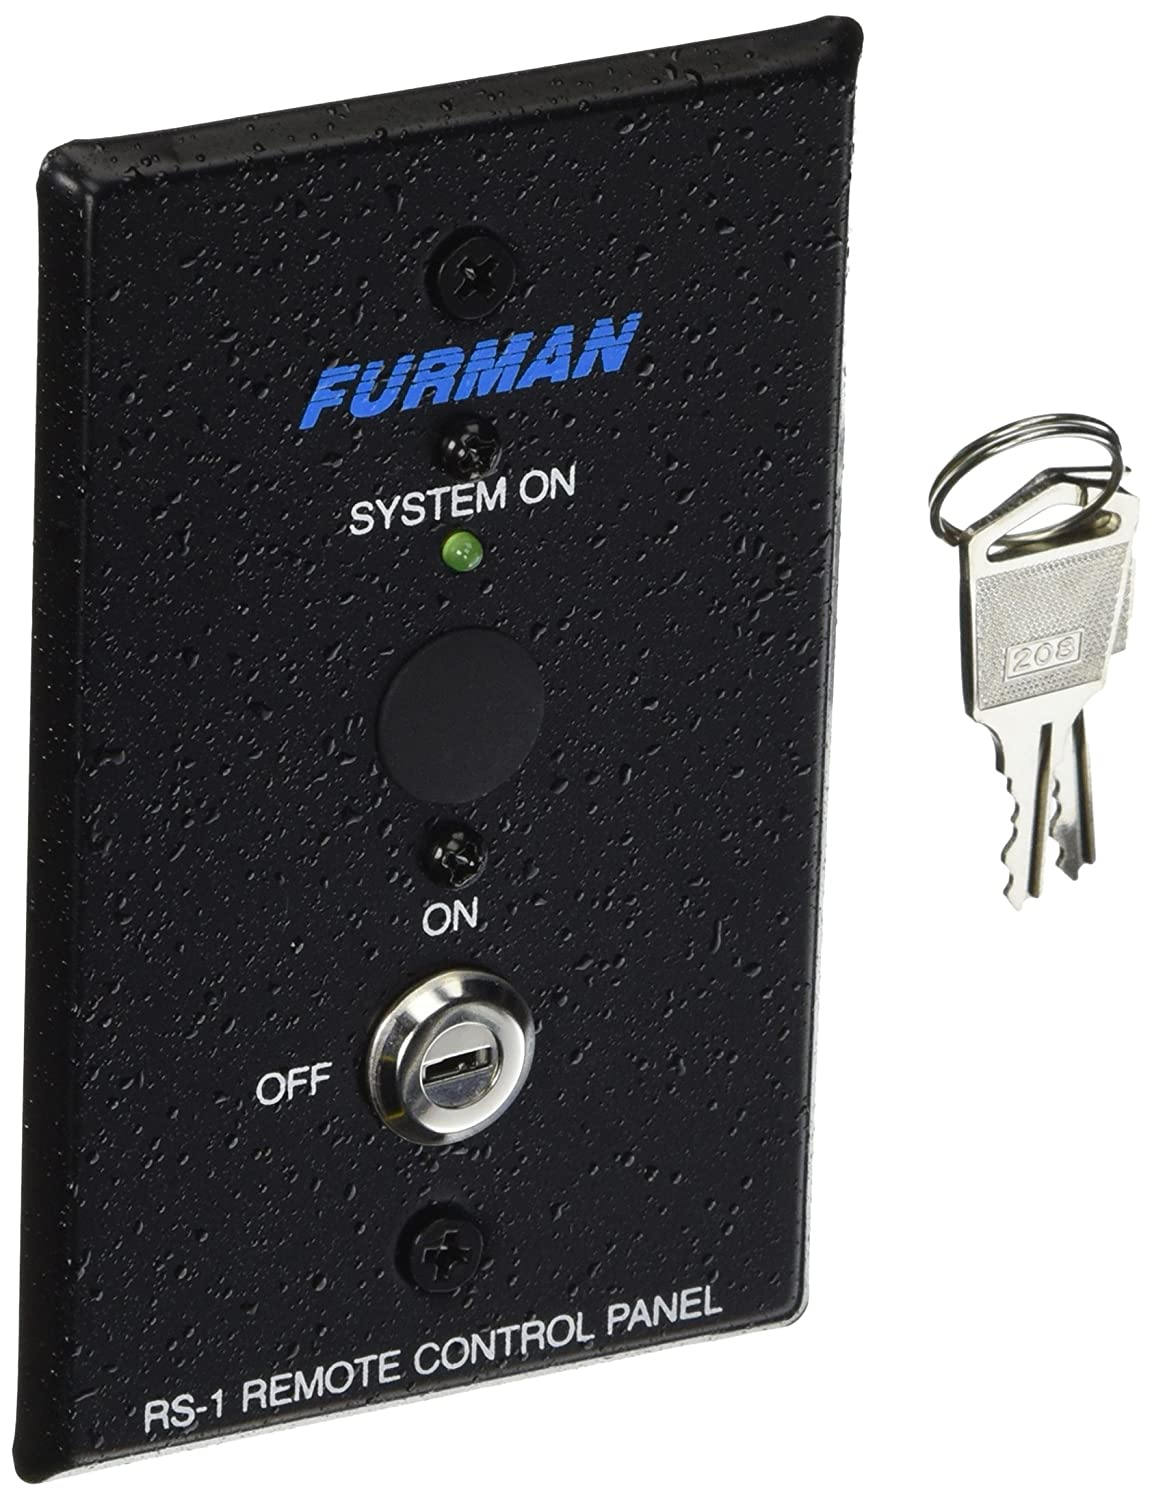 Furman RS-1 Remote System Control of Furman Power Sequencers, Keyswitch Panel, Maintained Contact On/Off Sequence Furman Pro